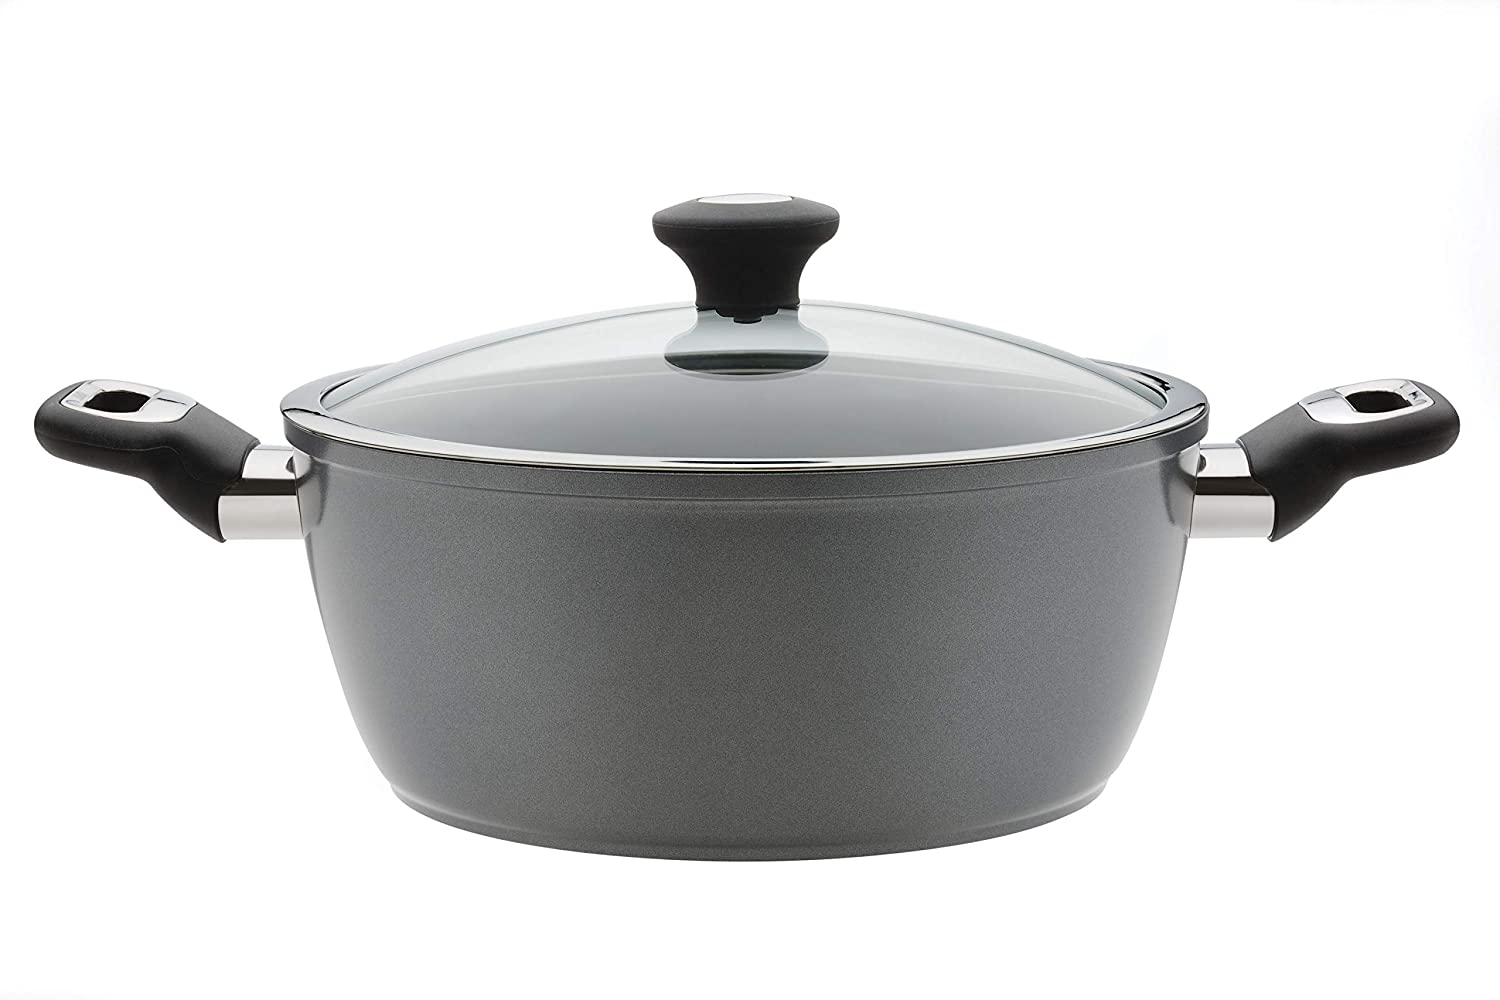 5 L 26 cm Thomas 1406204 Titanium Casserole Pan with Glass Lid